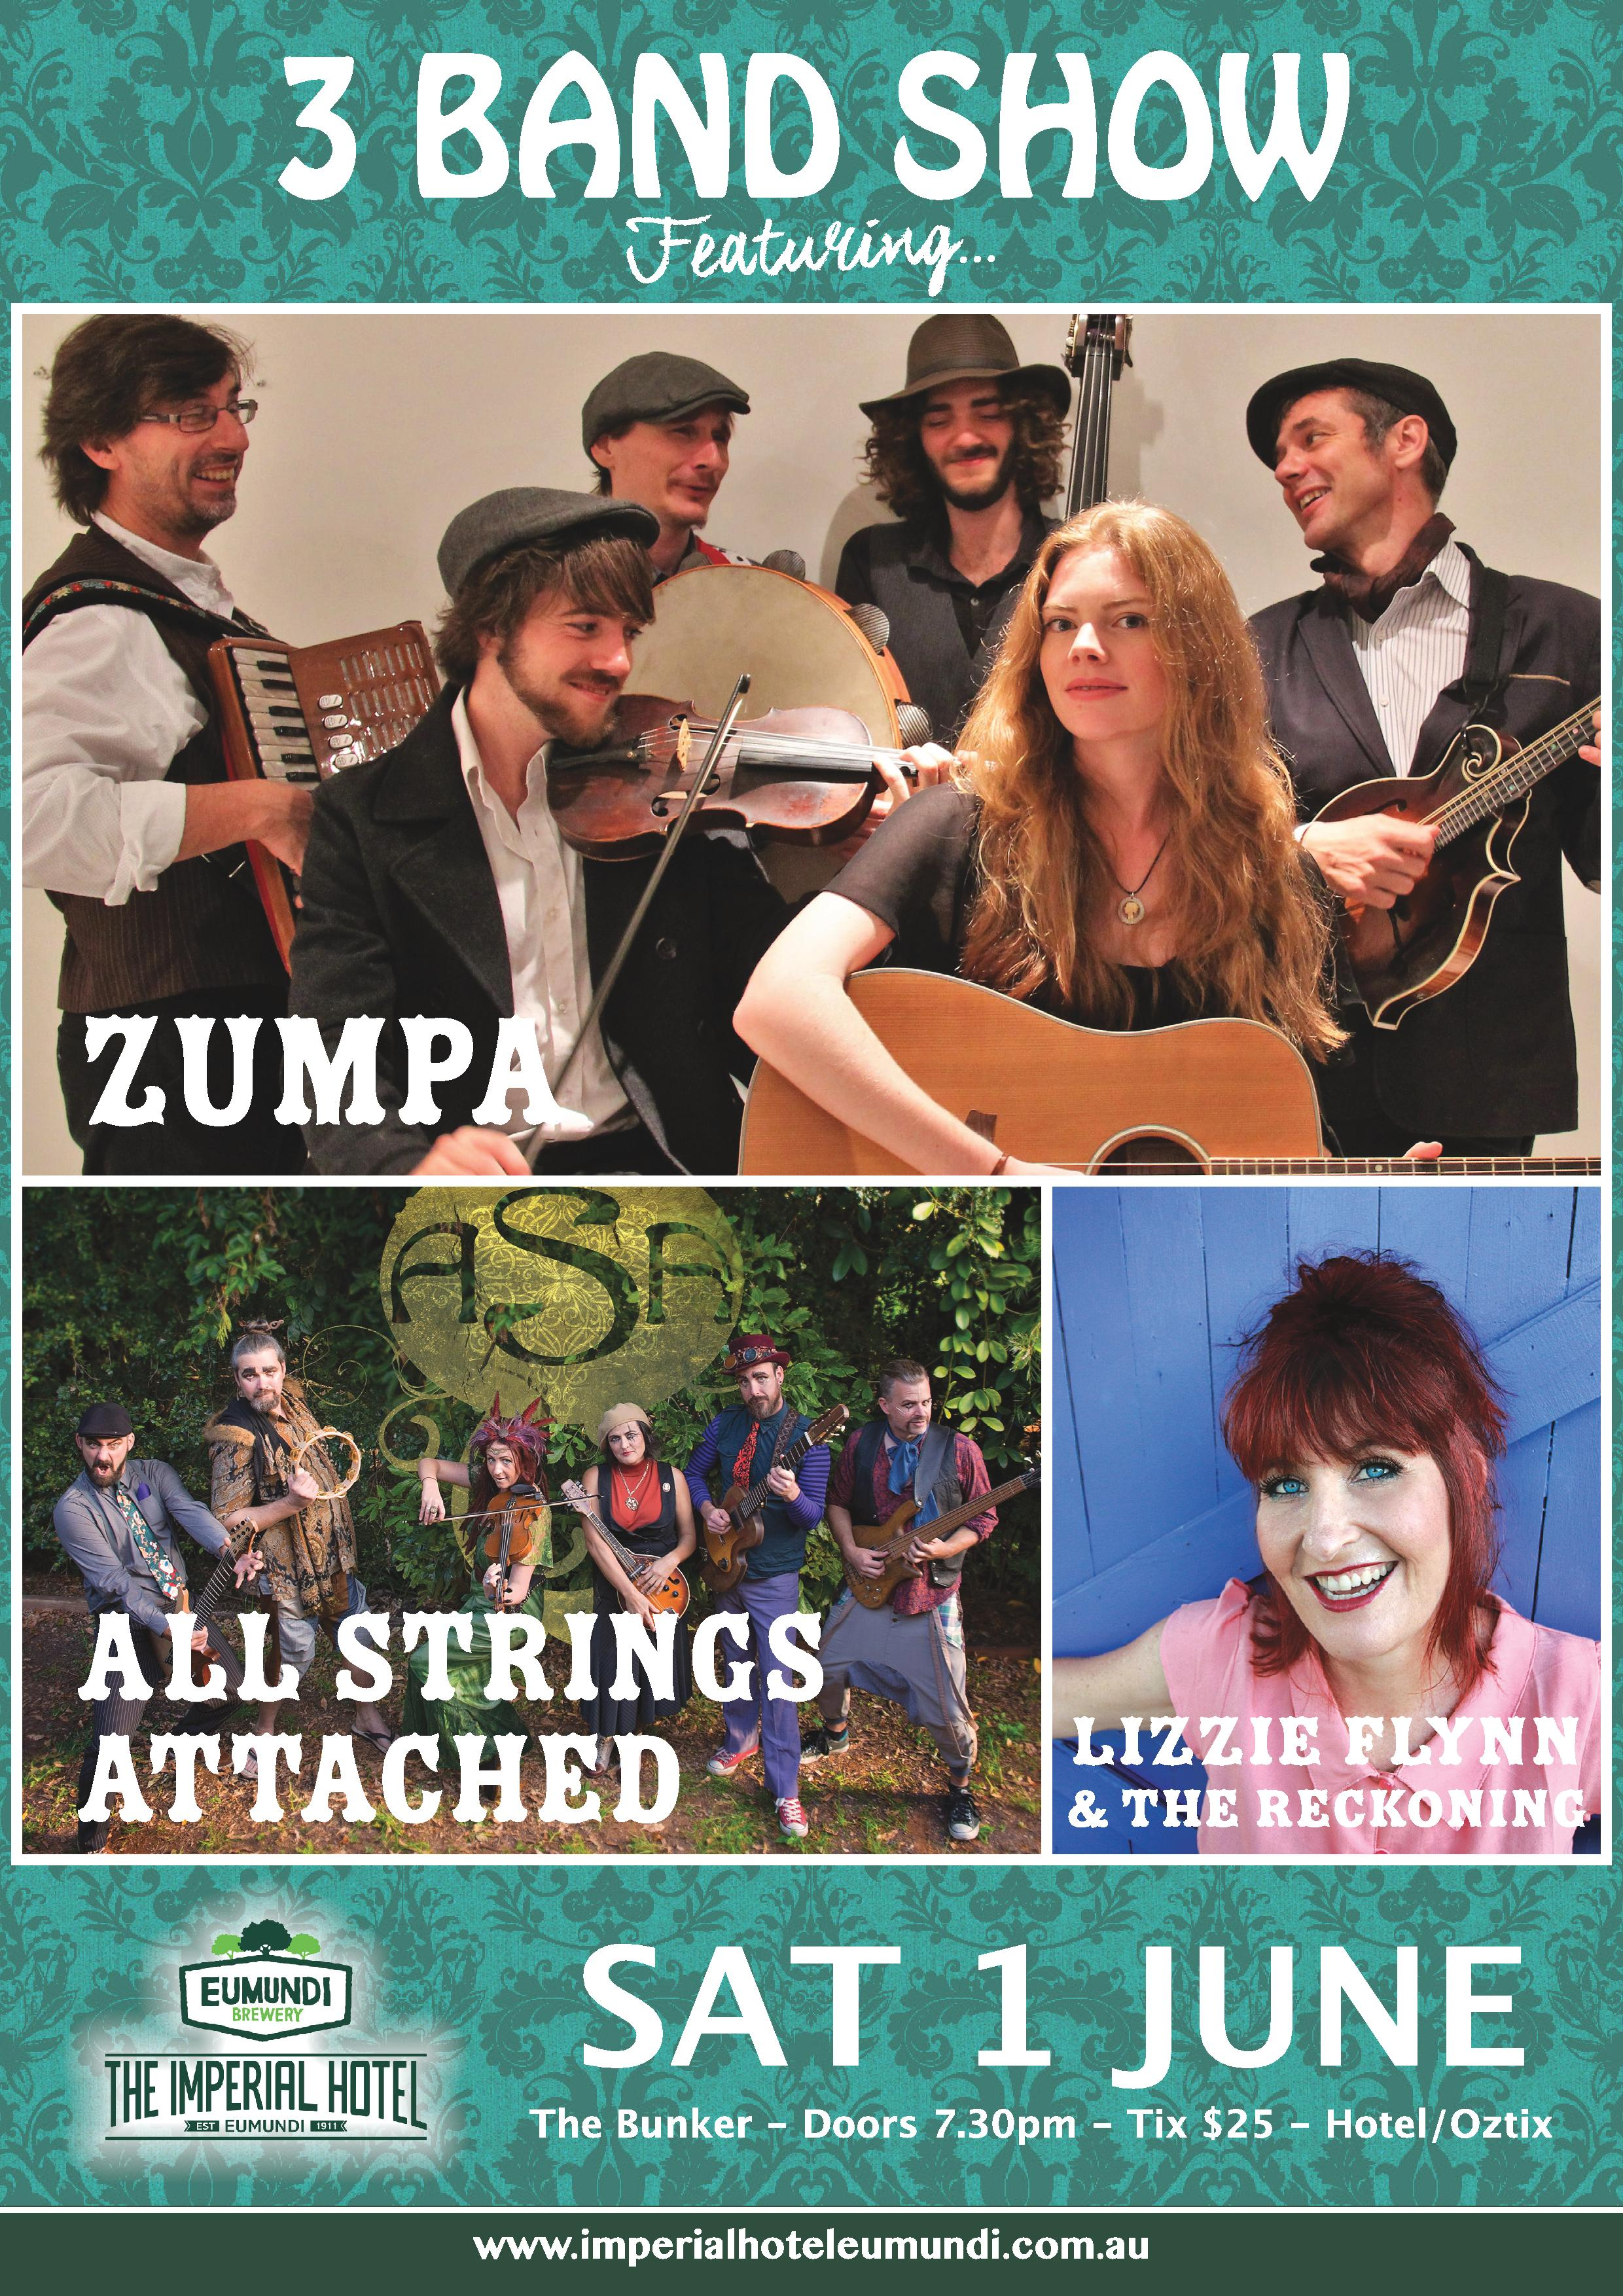 3 BAND SHOW - Zumpa, All Strings Attached + Lizzie Flynn & The Reckoning